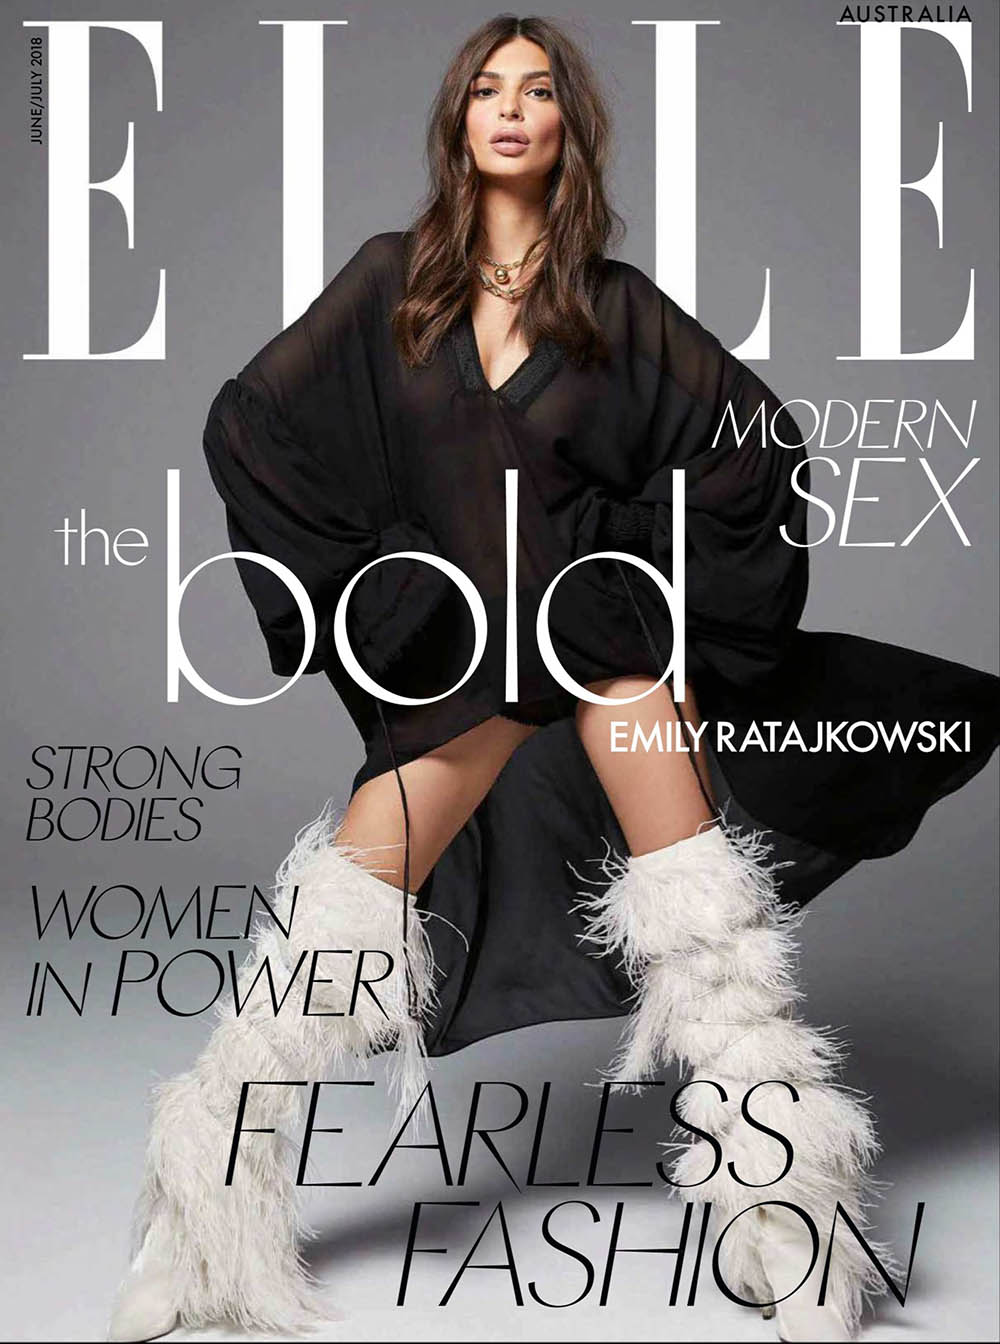 Emily Ratajkowski covers Elle Australia June 2018 by Kai Z Feng